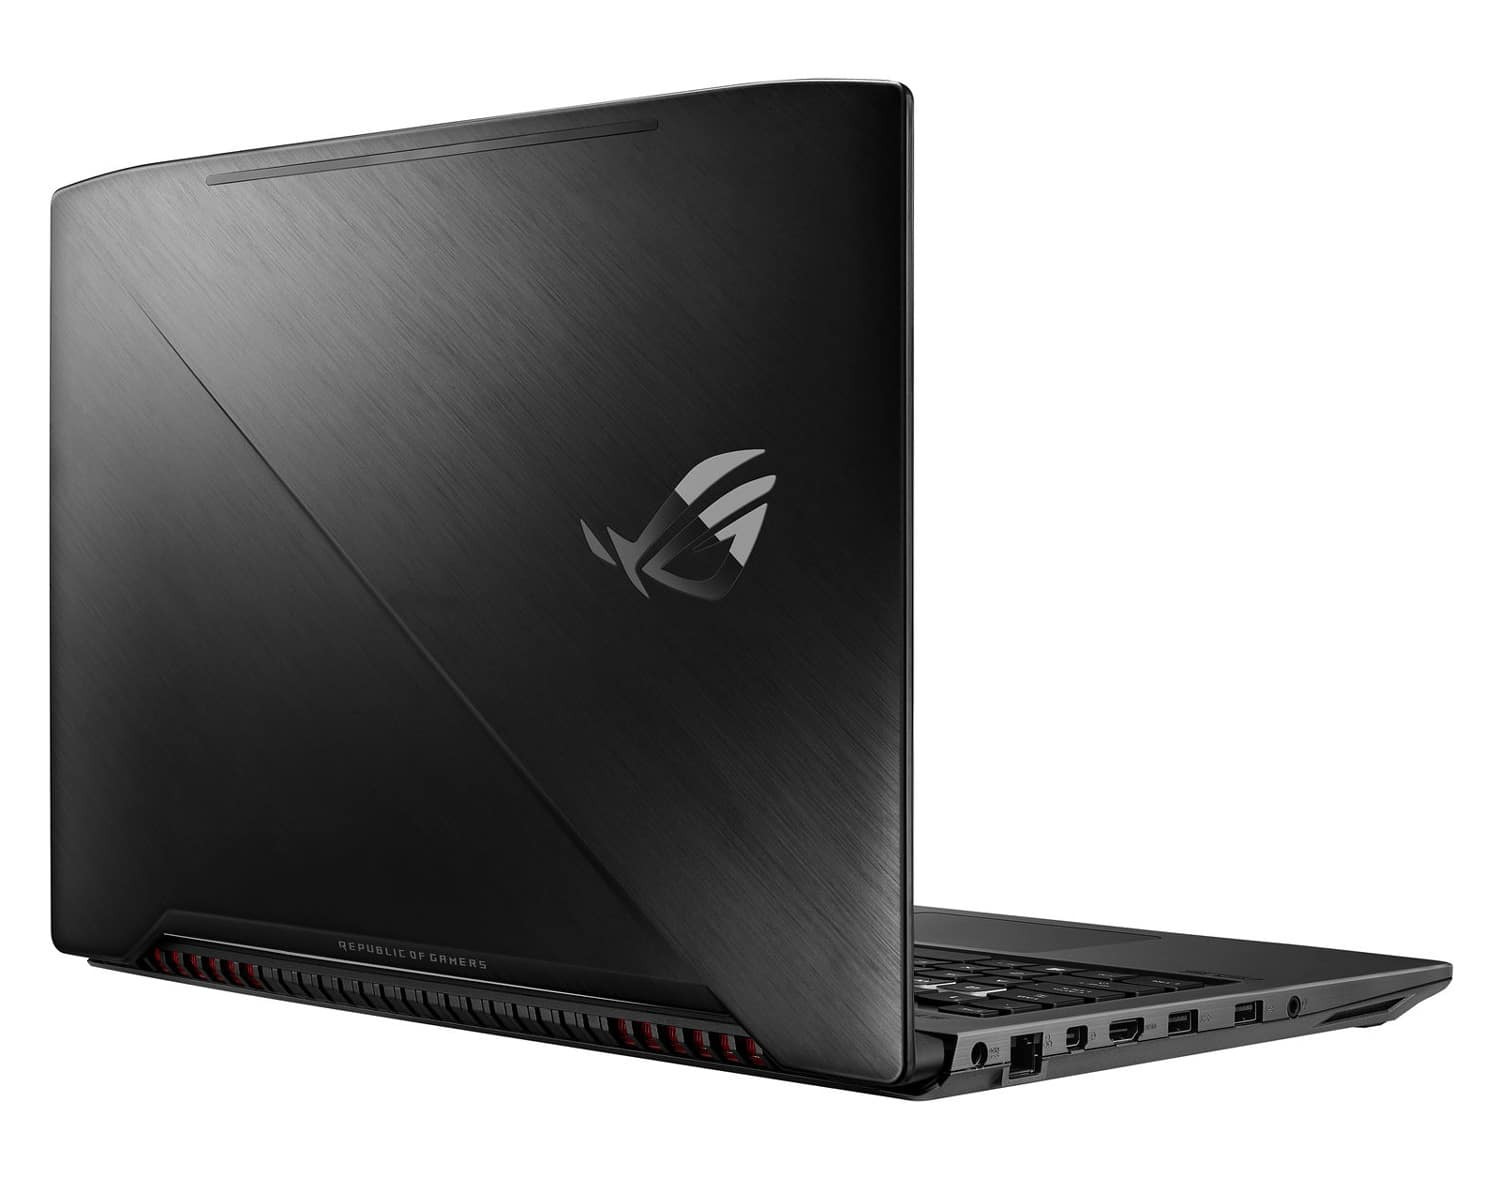 "Asus GL503GE-EN026T, PC portable 15"" 120Hz GTX 1050 Ti Coffee SSD 1149€"